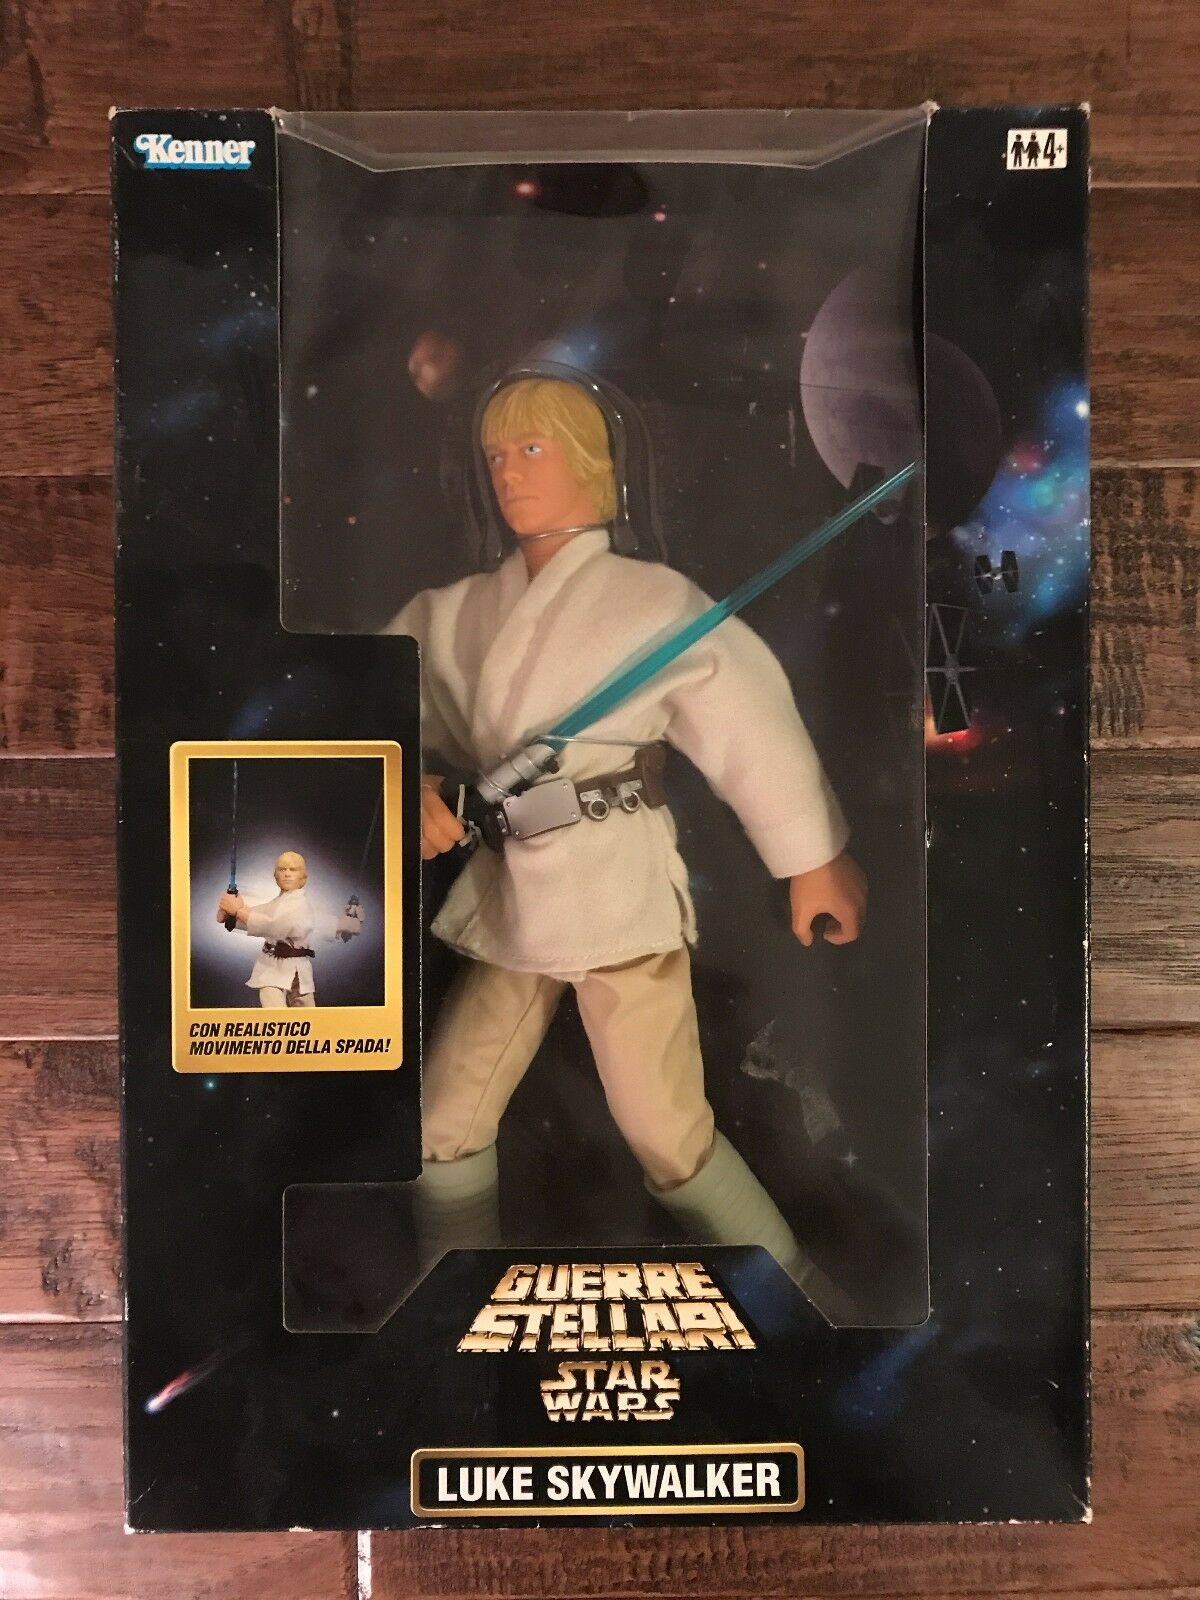 1998 (GiGi)  STAR WARS  (Guerre Stellari) LUKE SKYWALKER (Italian) Figure, NEW